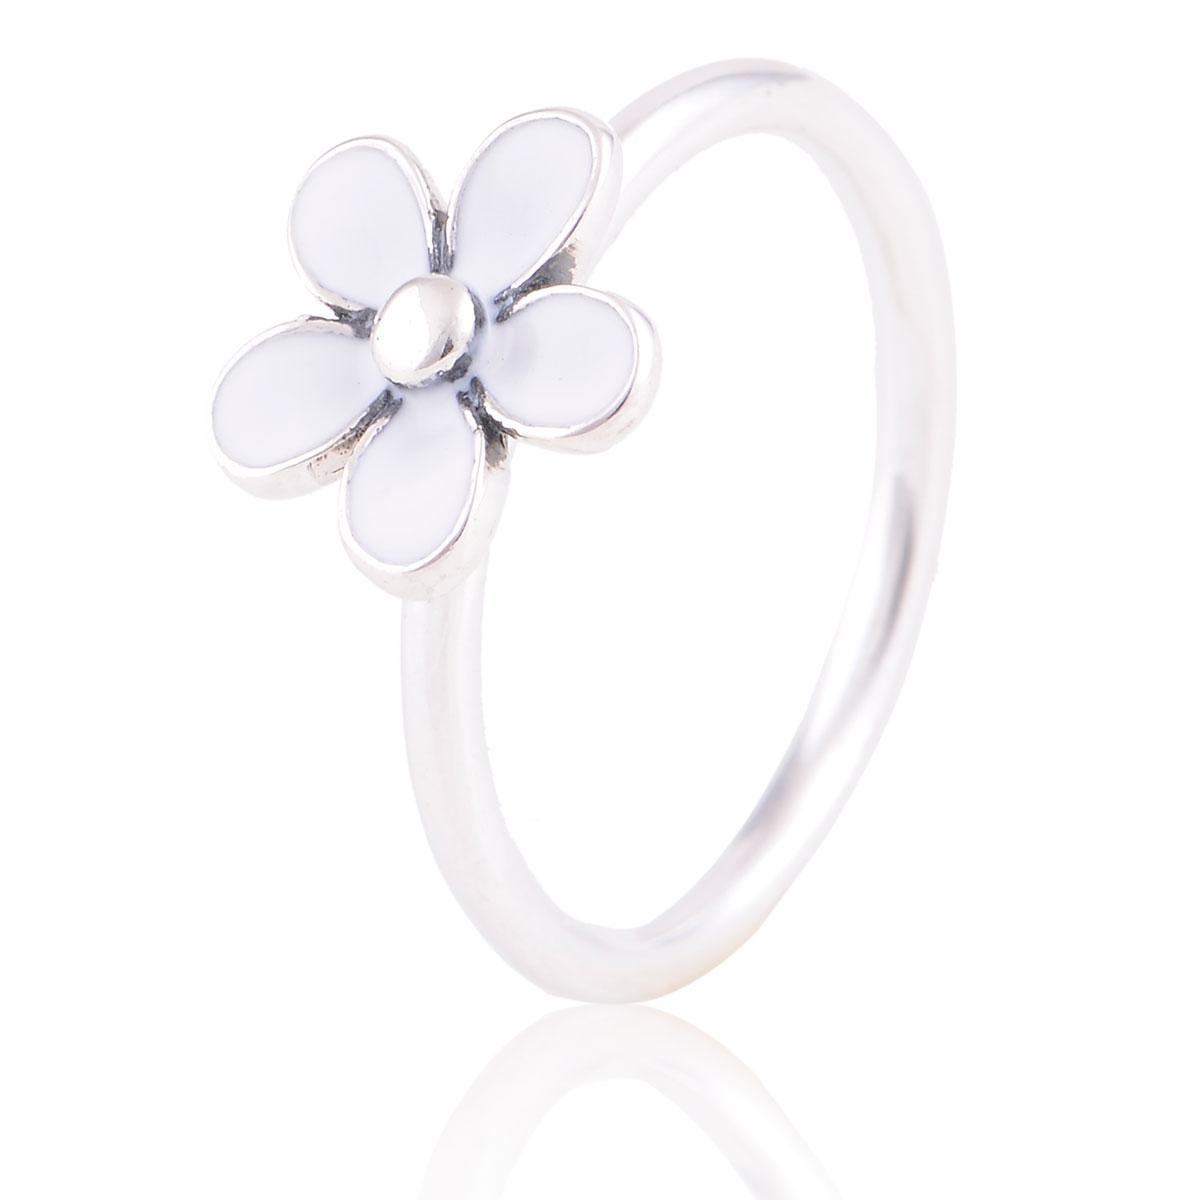 Daisy Flower Rings 925 Sterling Silver Pandora Style Fits For Women S S925 Sterling Silver Free Shipping Rip103h9 Regarding Most Popular Daisy Flower Rings (View 4 of 25)